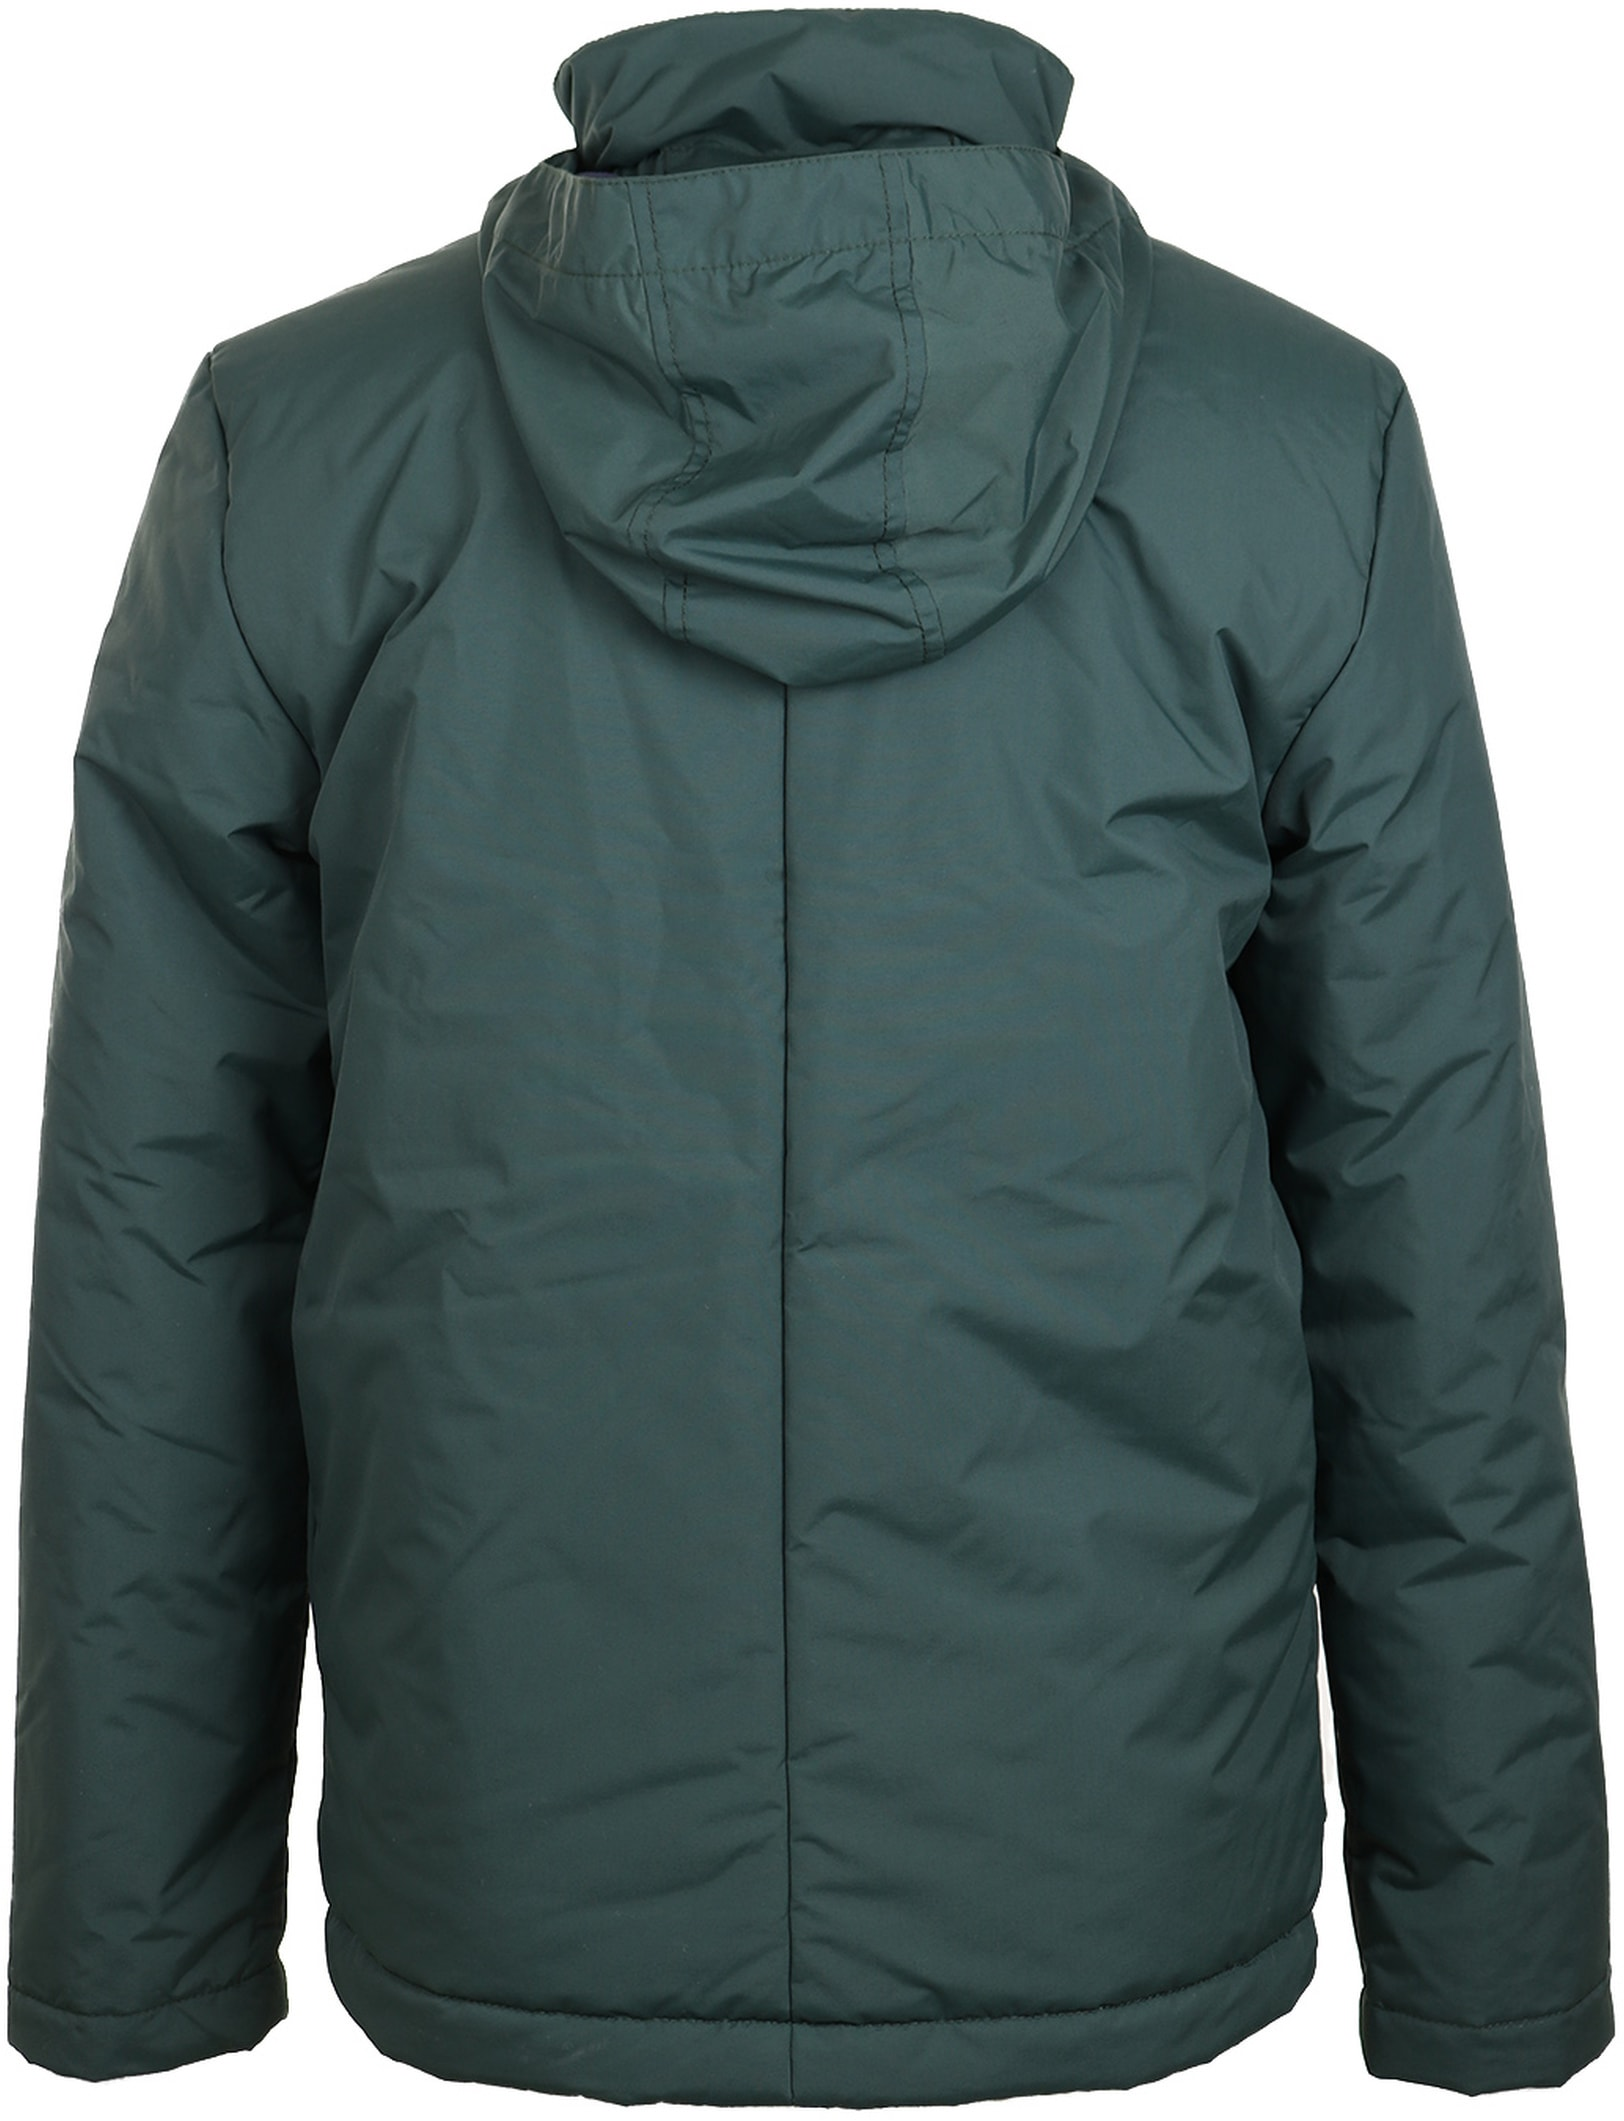 Suitable Jacket Agera Green foto 2